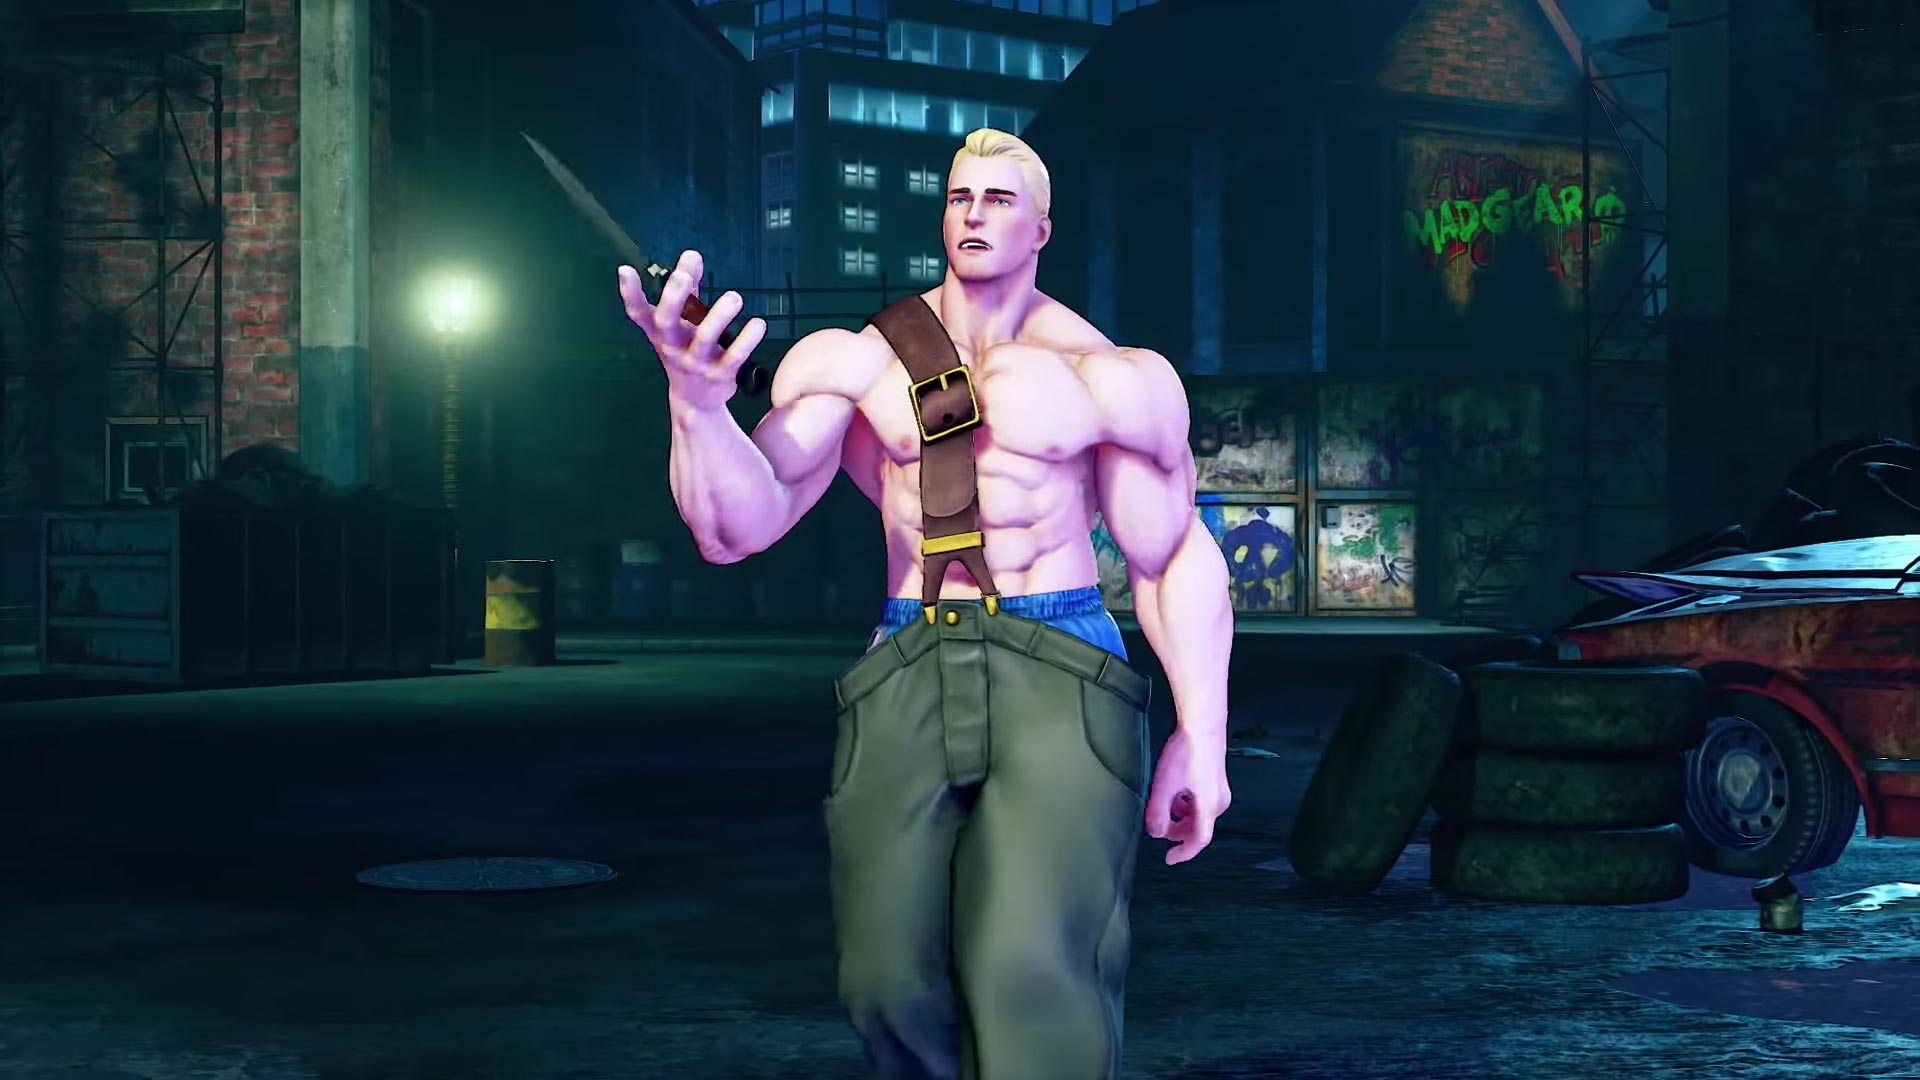 Cody Street Fighter 5: Arcade Edition reveal 5 out of 9 image gallery